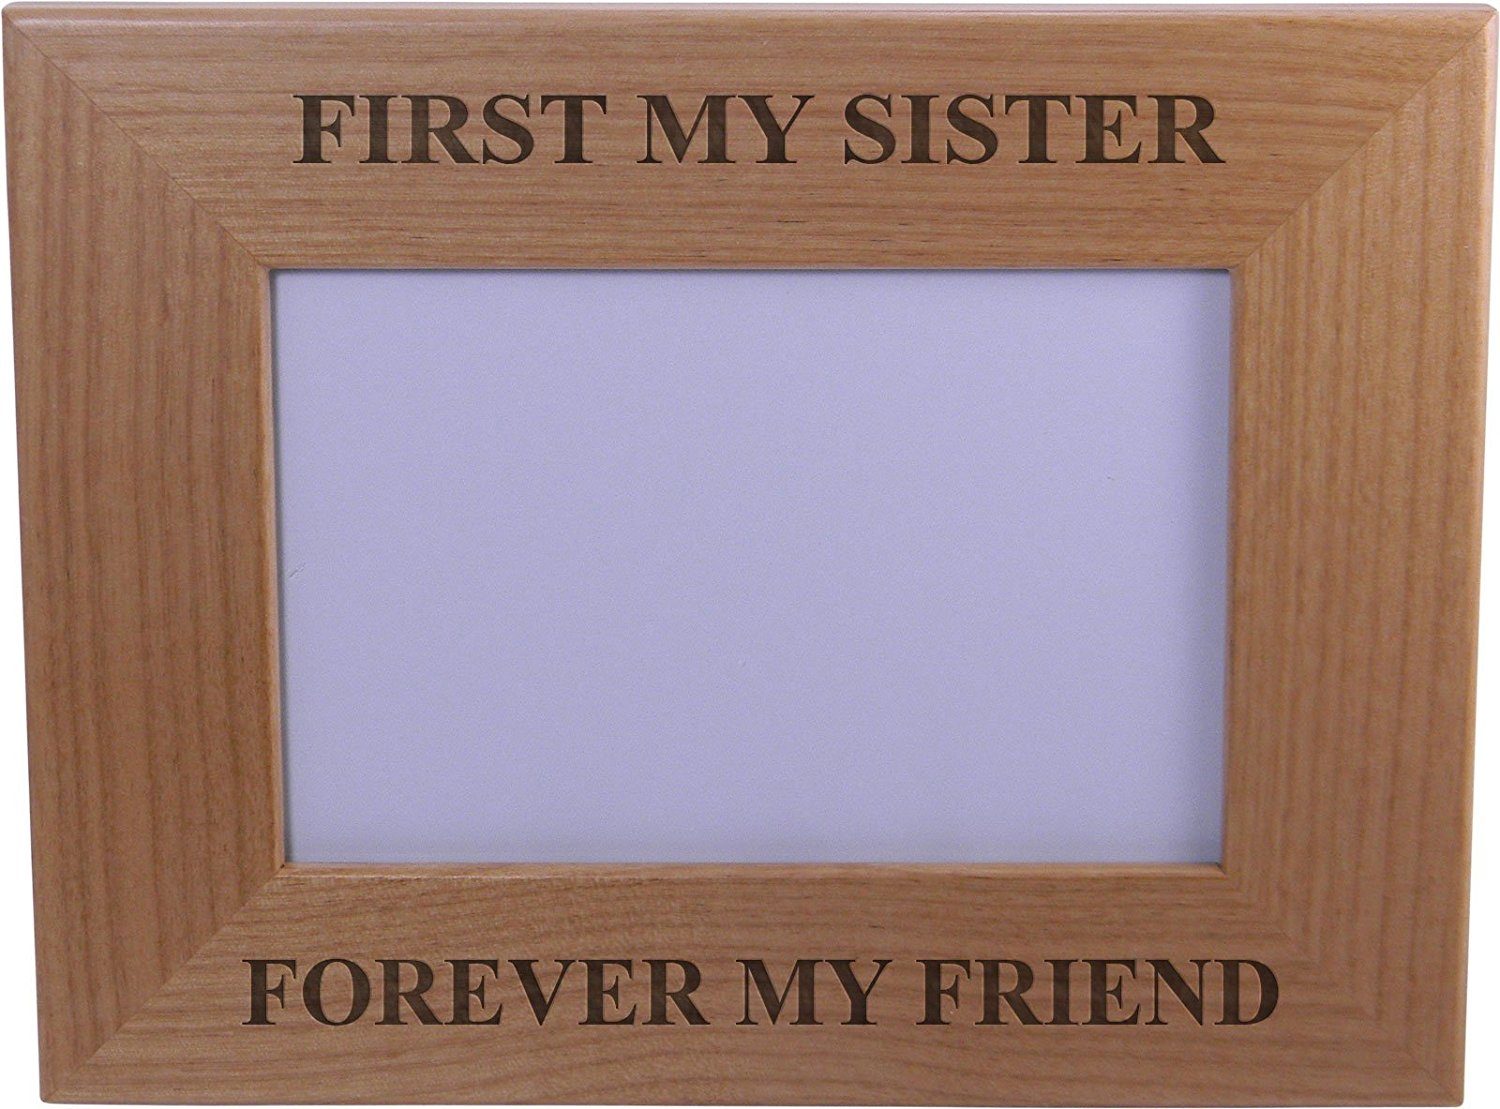 get quotations first my sister forever my friend 4x6 inch wood picture frame great gift for birthday - Good Cheap Christmas Gifts